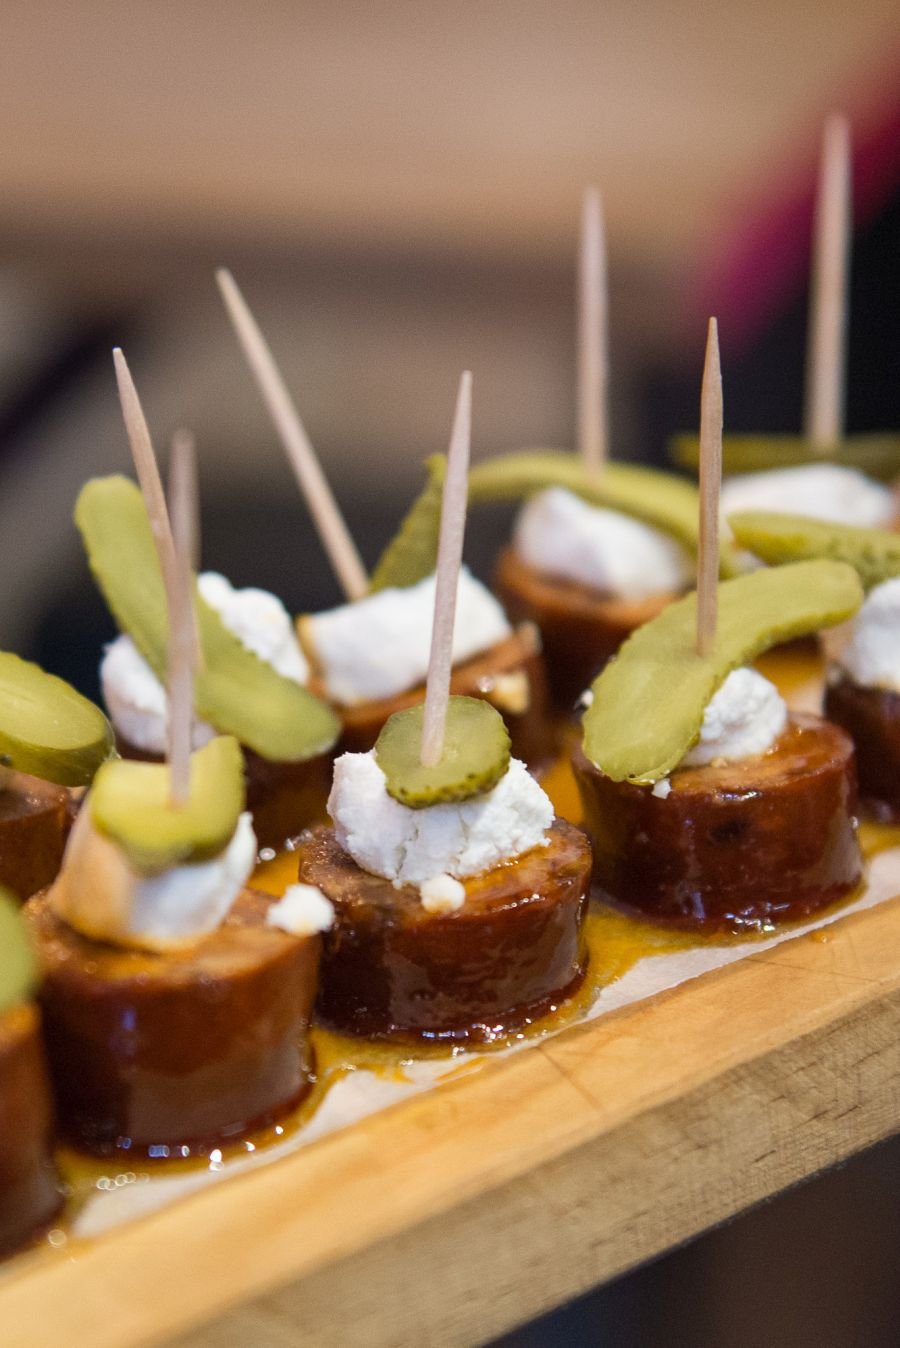 Pintxos chorizo con miel - sausage, honey and cheese (AU$2 each)